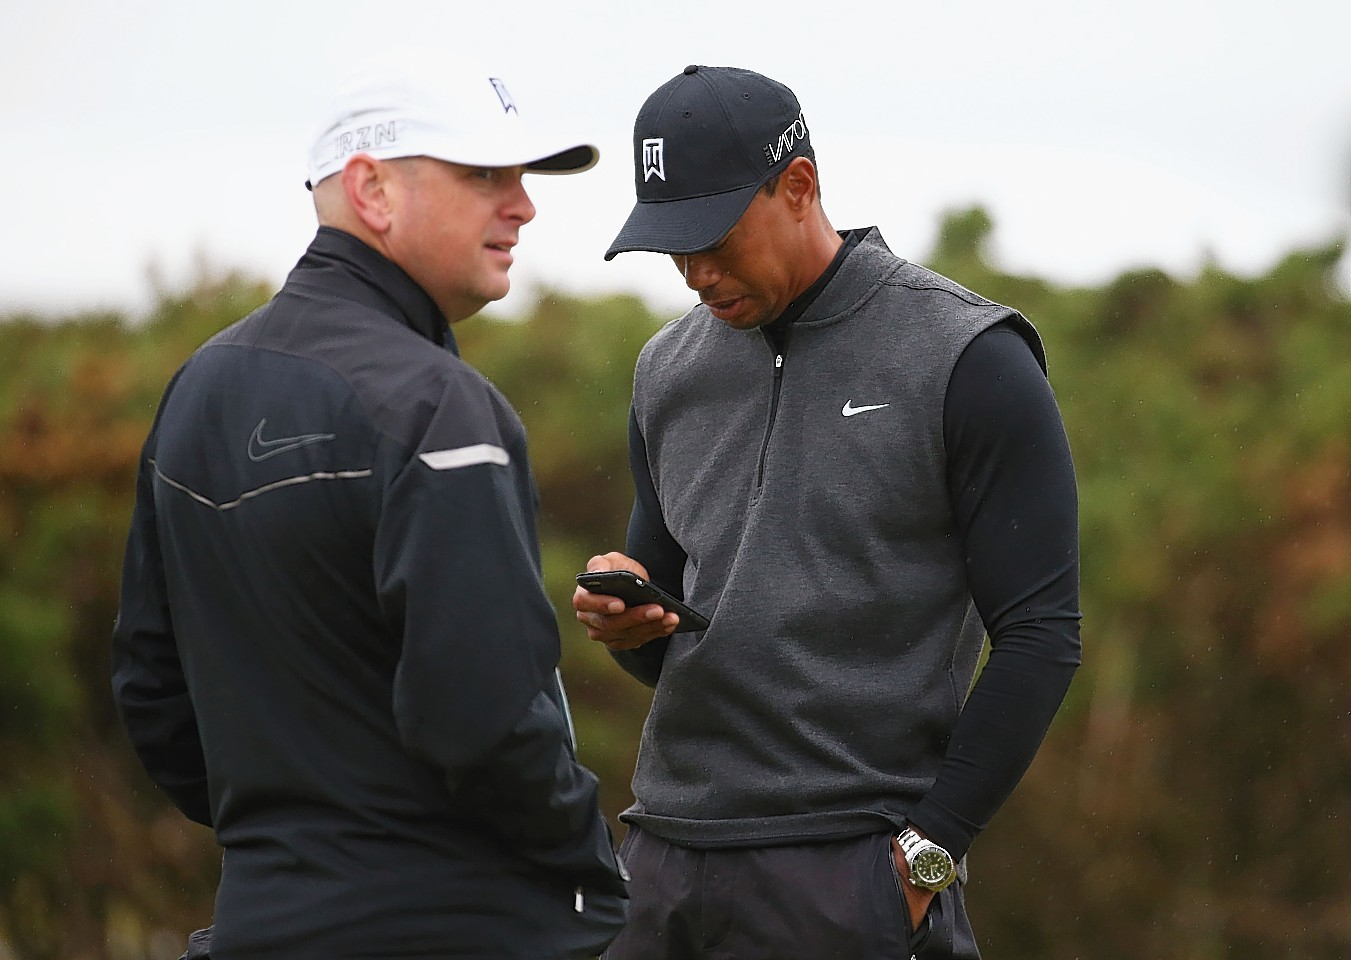 Tiger Woods of the United States looks down at his phone alongside caddie Joe LaCava ahead of the 144th Open Championship at The Old Course